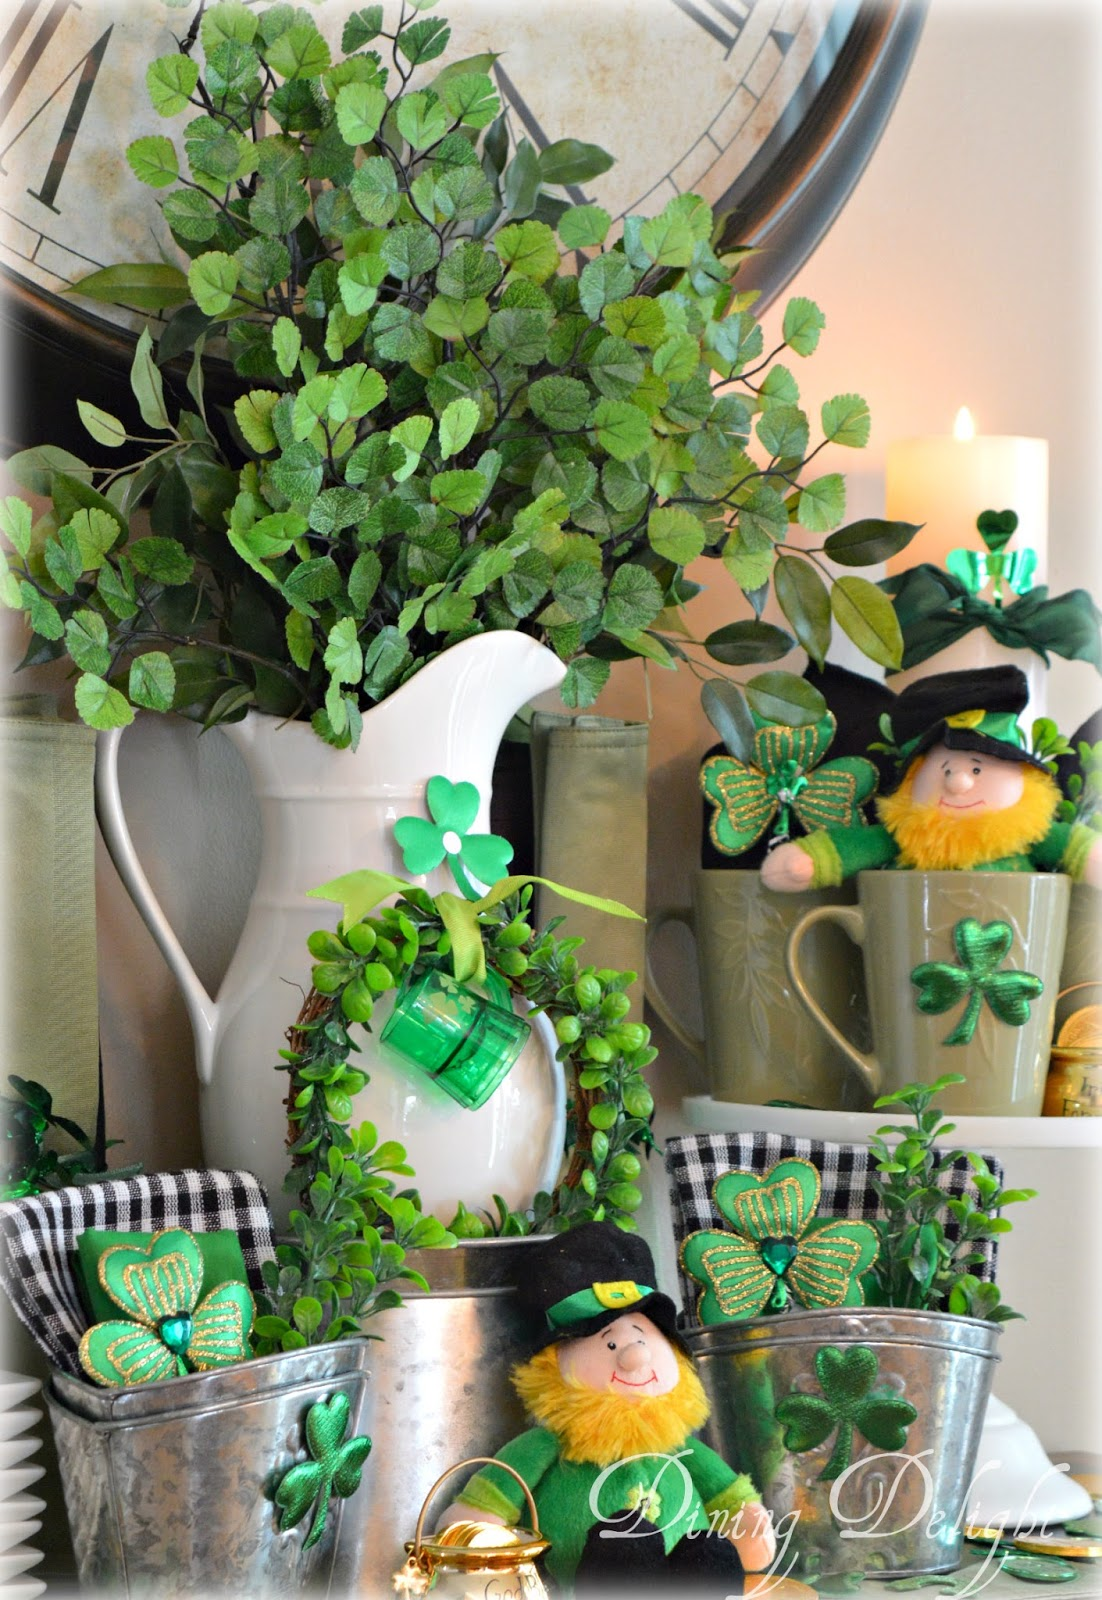 Dining delight st patrick 39 s day kitchen display for St patricks day decorations for the home